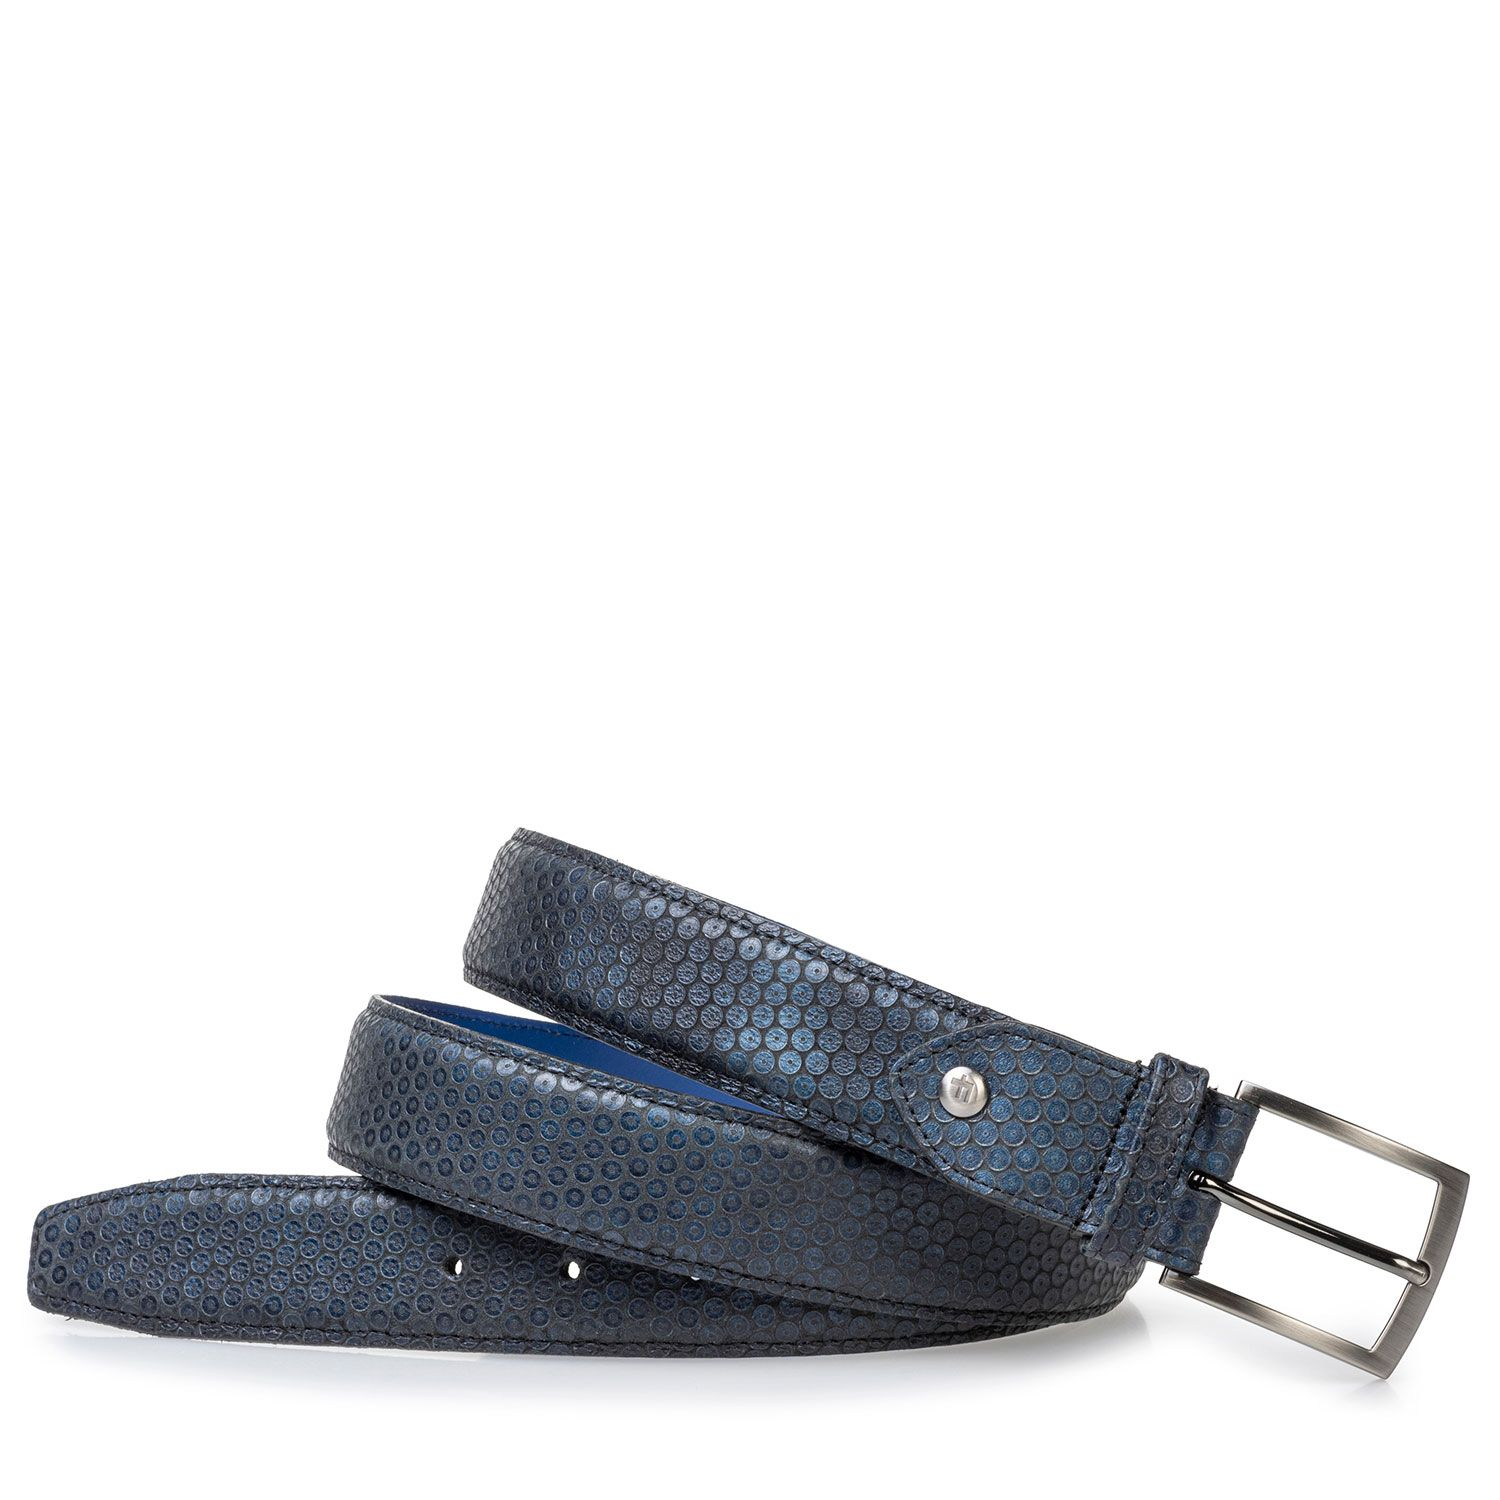 75203/51 - Leather belt blue with print